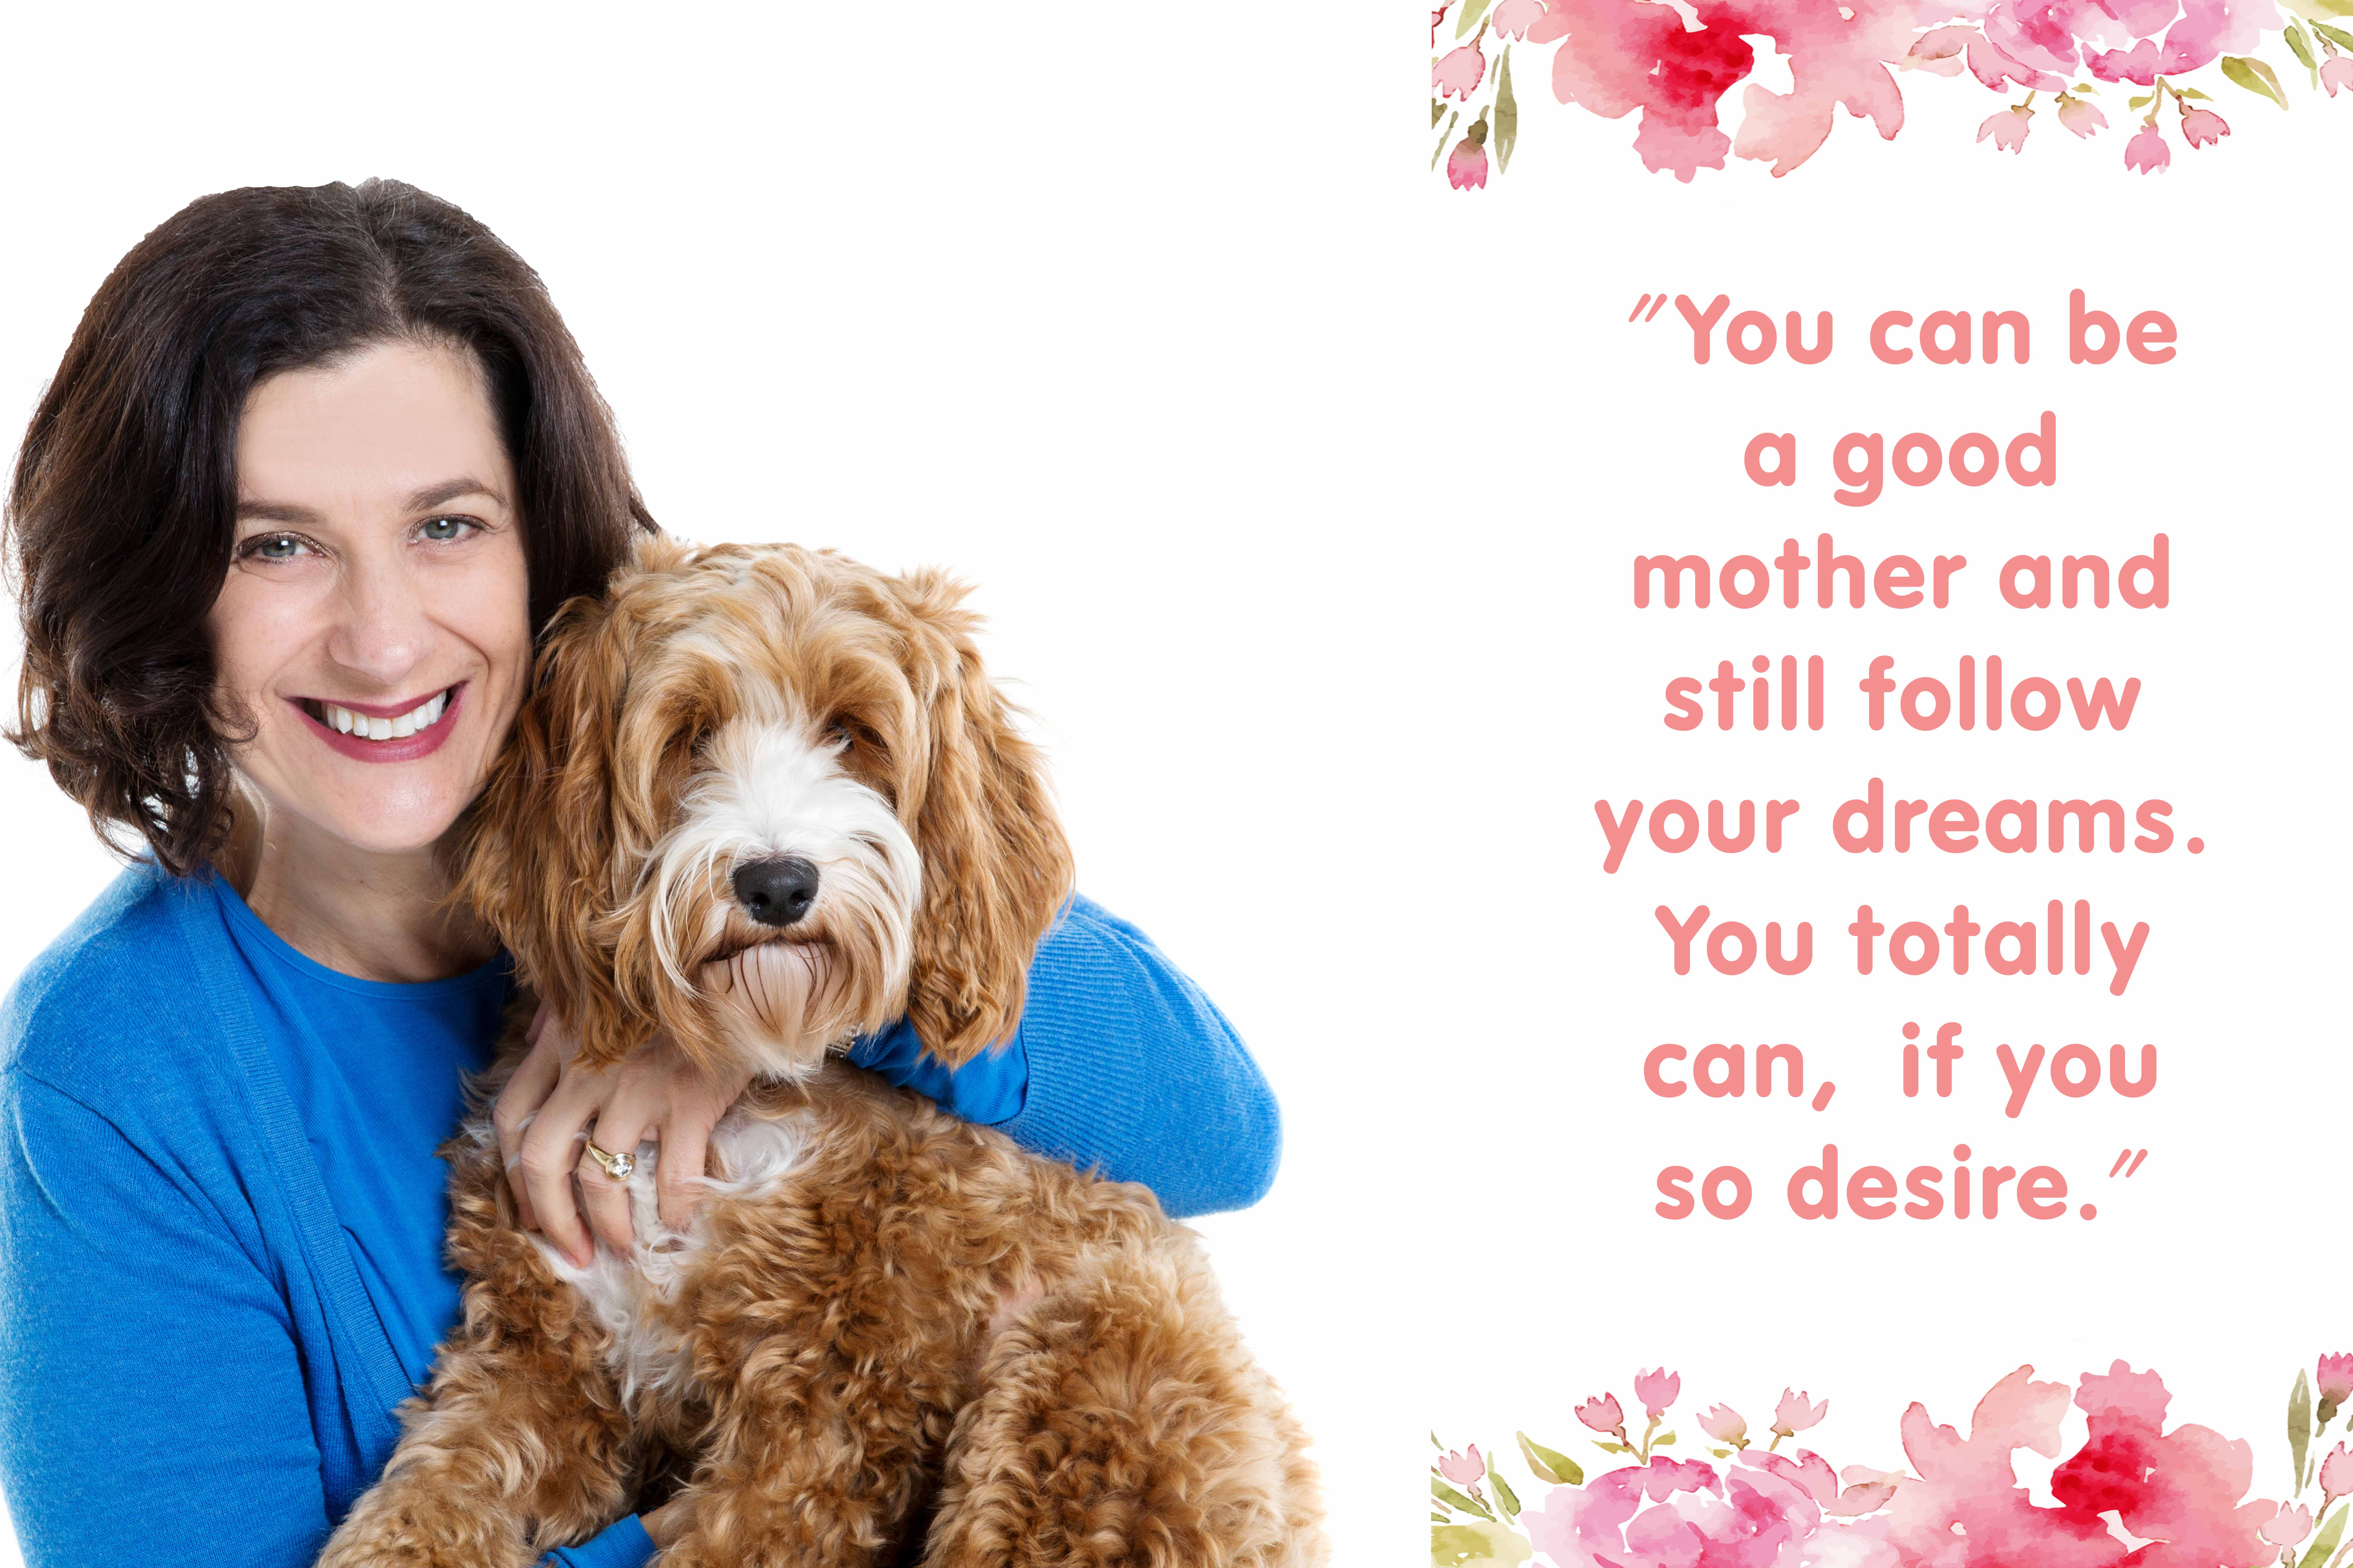 mothers day, mothers day quote, dog mum, cute dog, mother, mothers, fur babies, Labradoodle, Labradoodles, cute Labradoodle, Labradoodle cute, tan Labradoodle, happy mothers day, Australian mothers day, mothers day quotes, empowerment, motivating quotes, quotes for mums, follow dreams.